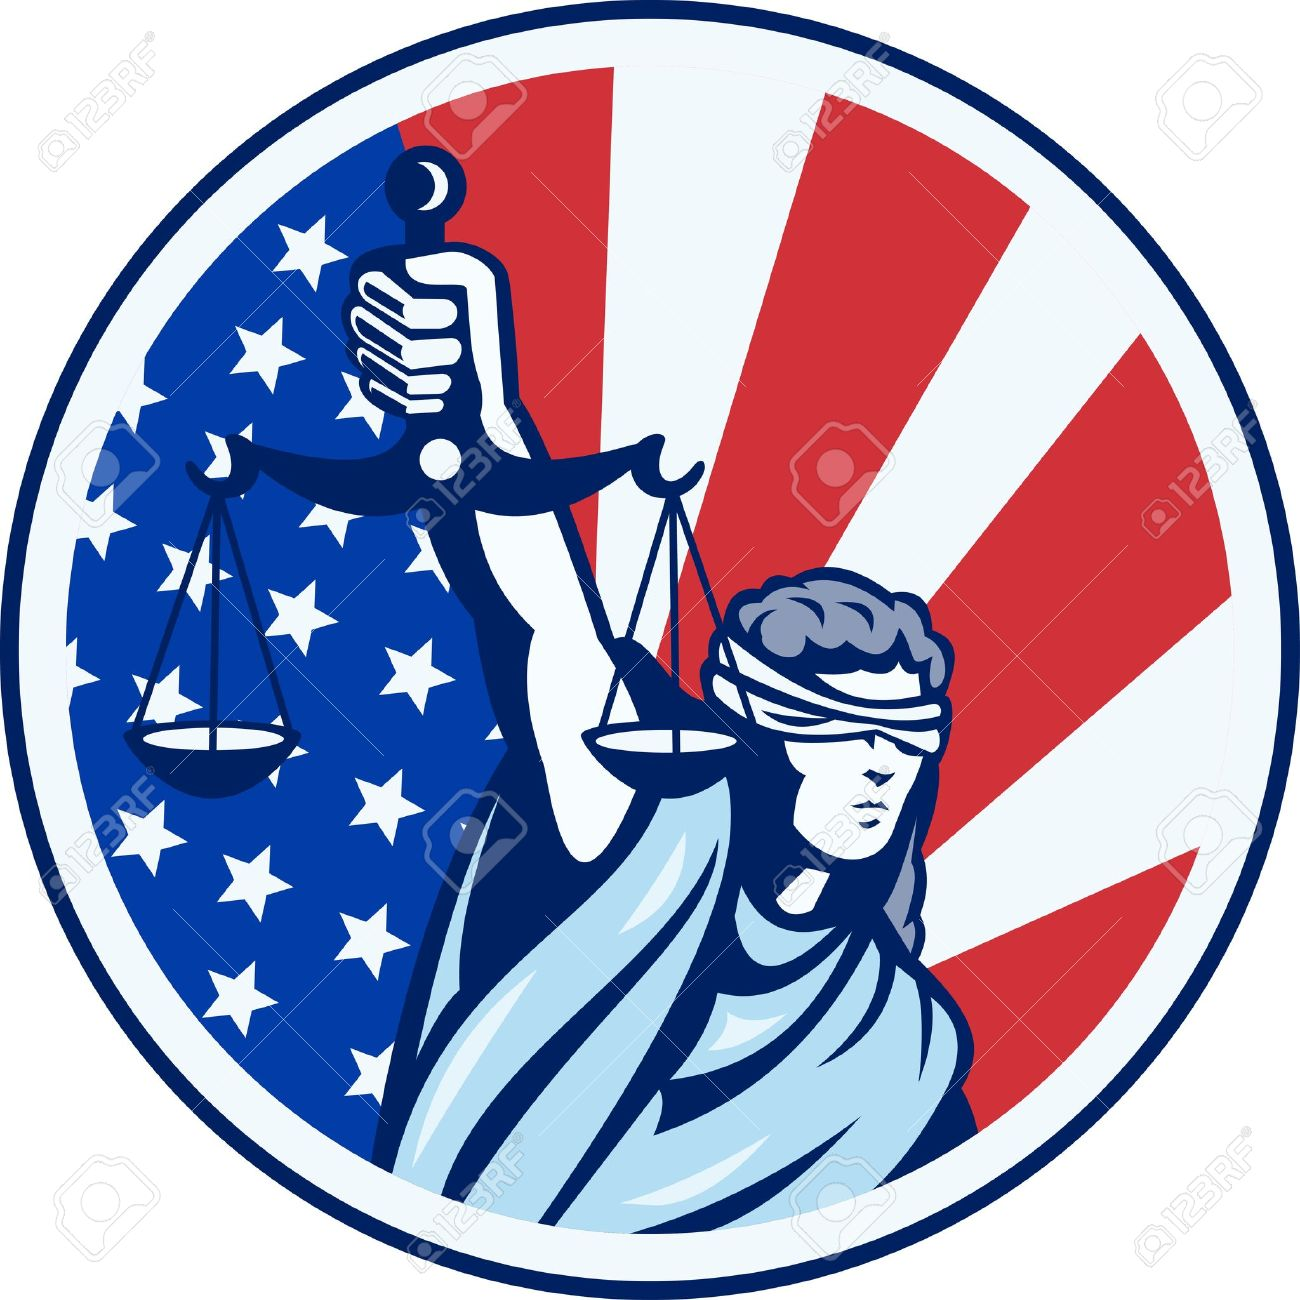 Illustration of lady with blindfold holding scales of justice with American stars and stripes flag set inside circle done in retro style. Stock Vector - 14029337